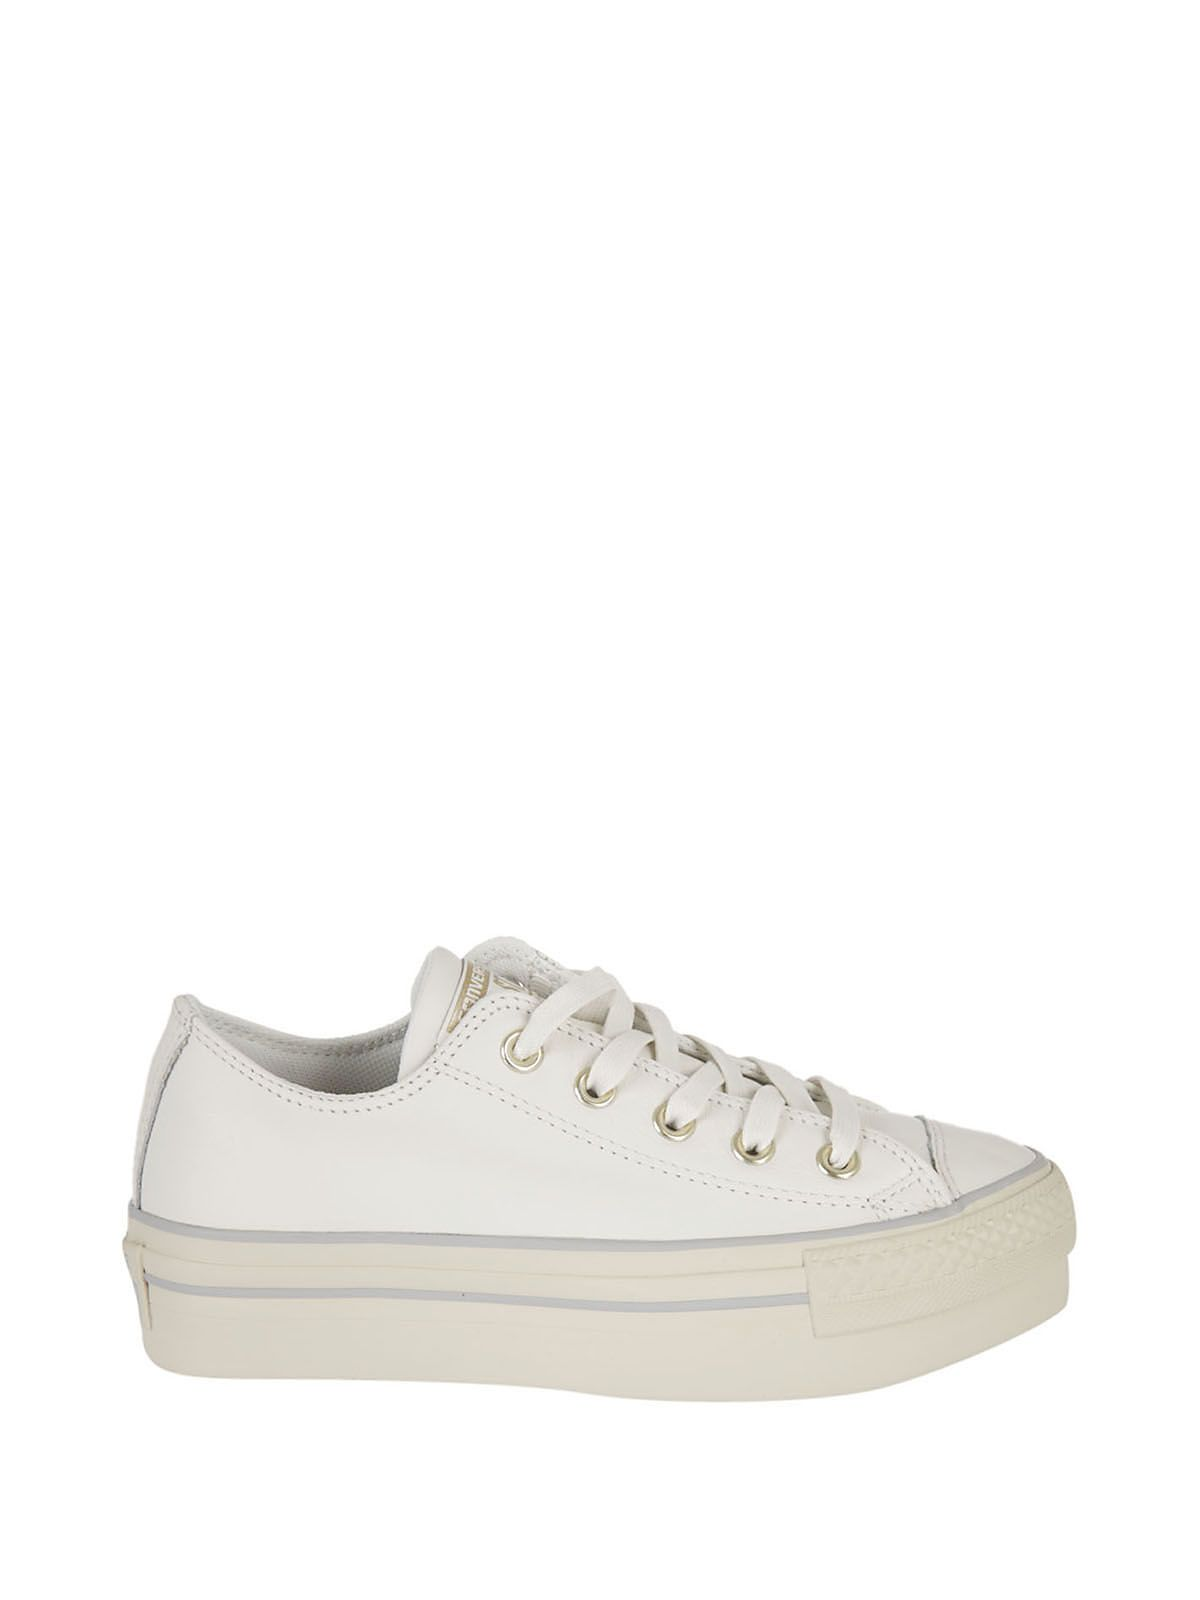 Converse Chuck Taylor Platform Low Top Sneakers